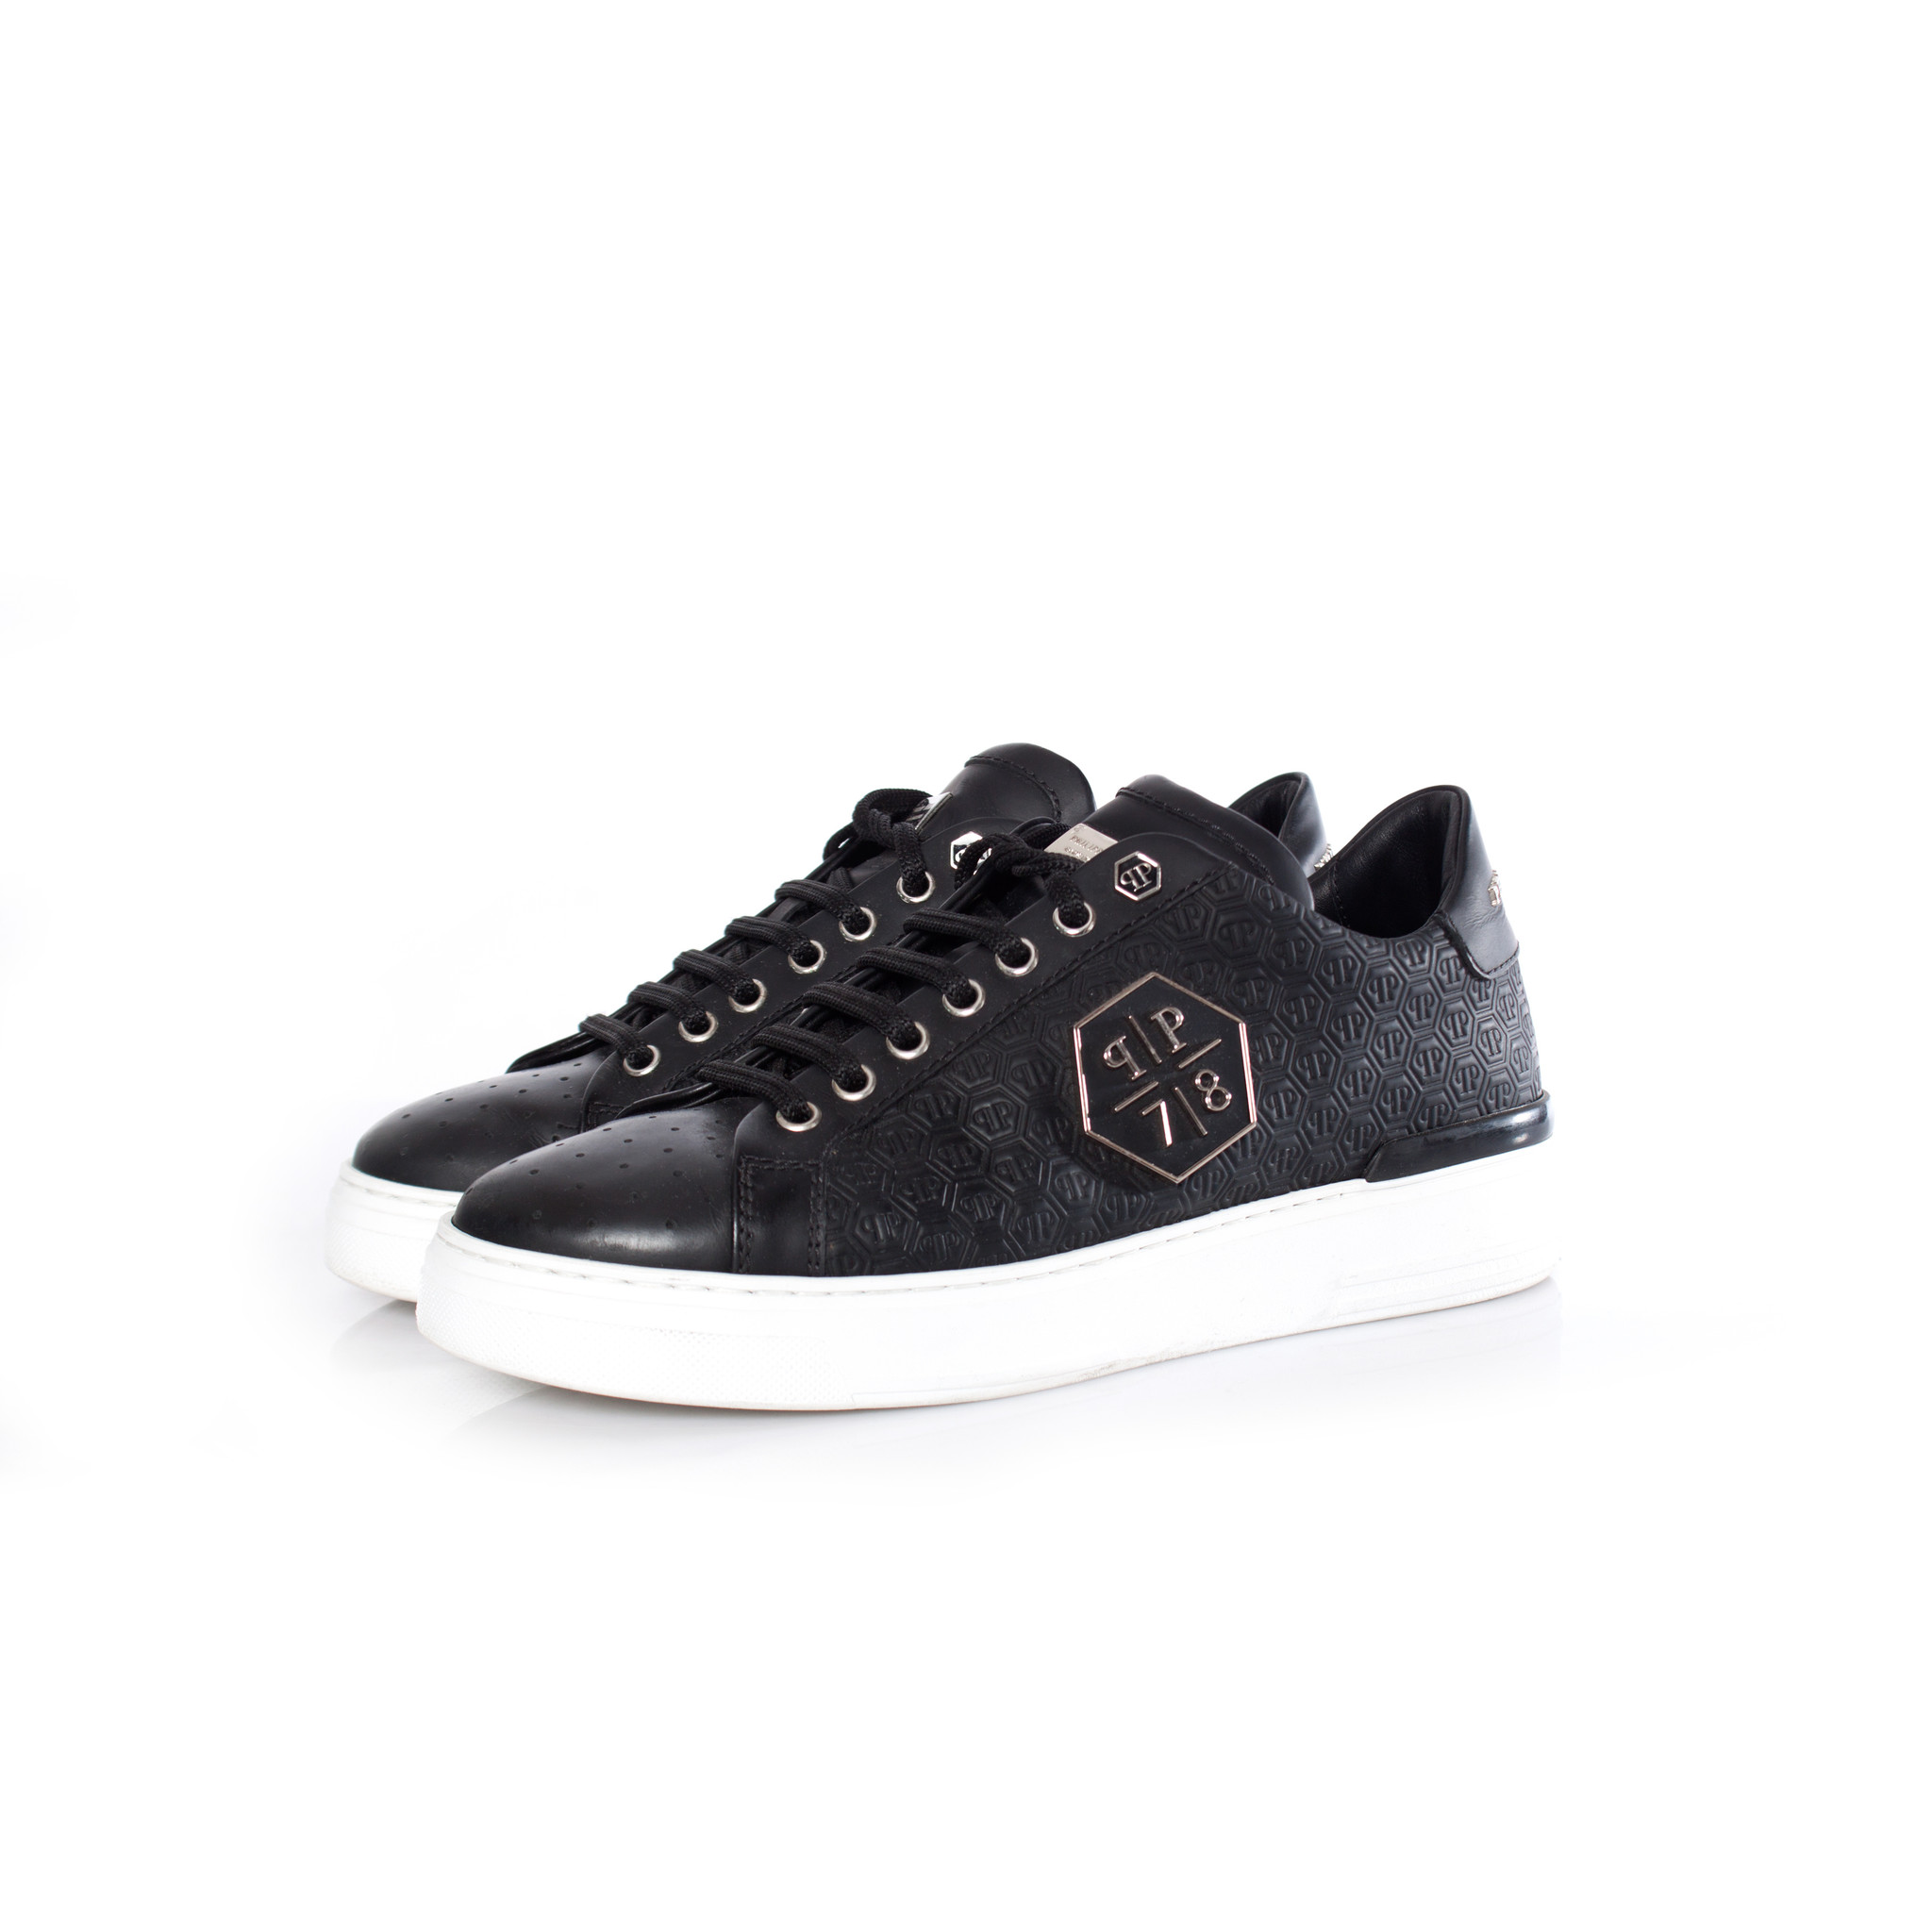 nuovo stile 2b39a 1ac01 Phillip Plein, black leather lo-top sneakers with logo print in size 40.